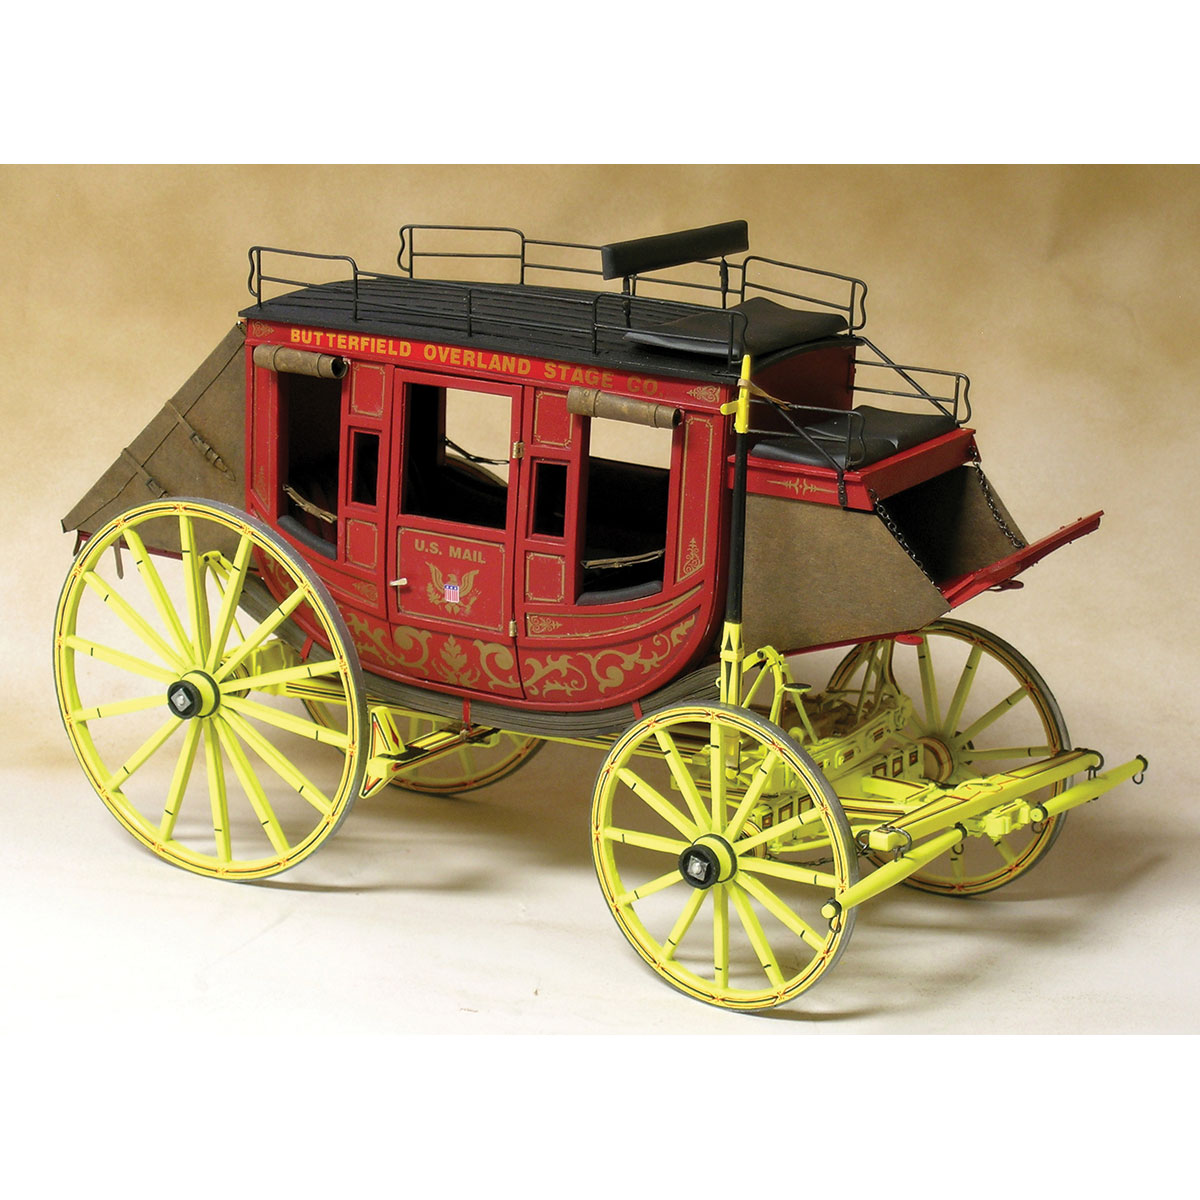 MODEL TRAILWAYS CONCORD STAGECOACH 1:12 SCALE